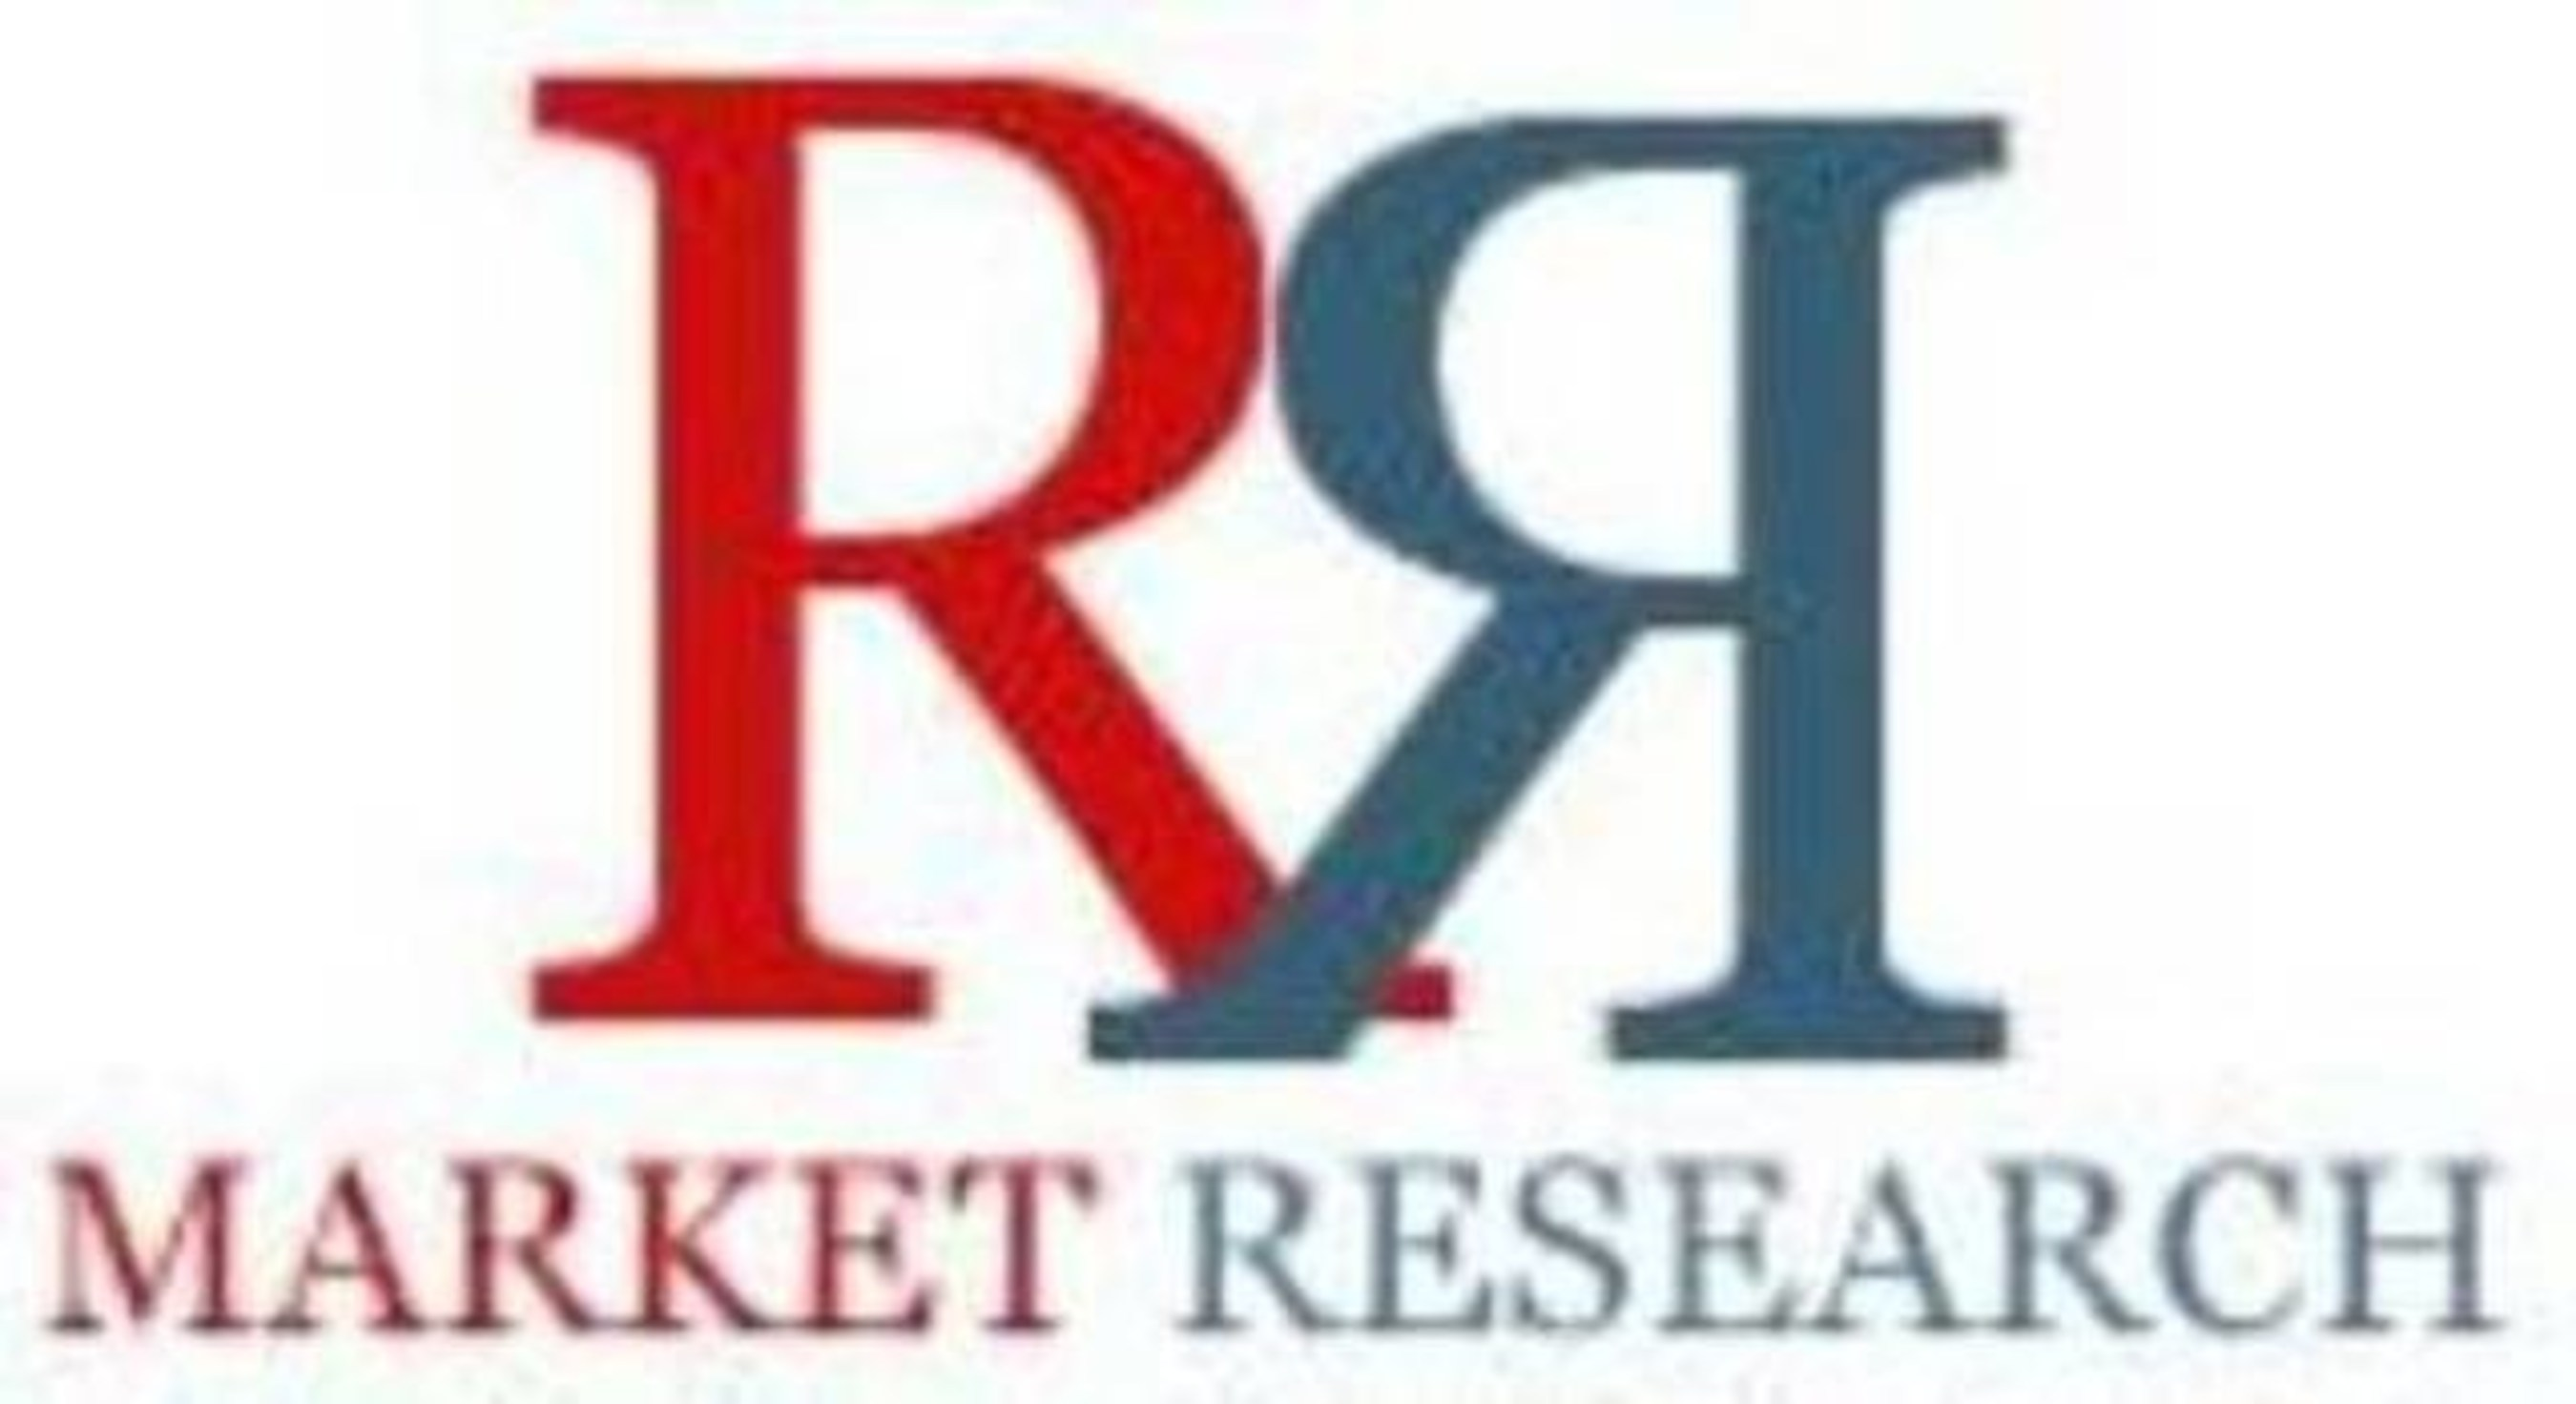 Rugged Notebooks Market Will See 2% CAGR Growth 2014 - 2019 Forecasts a Global Report